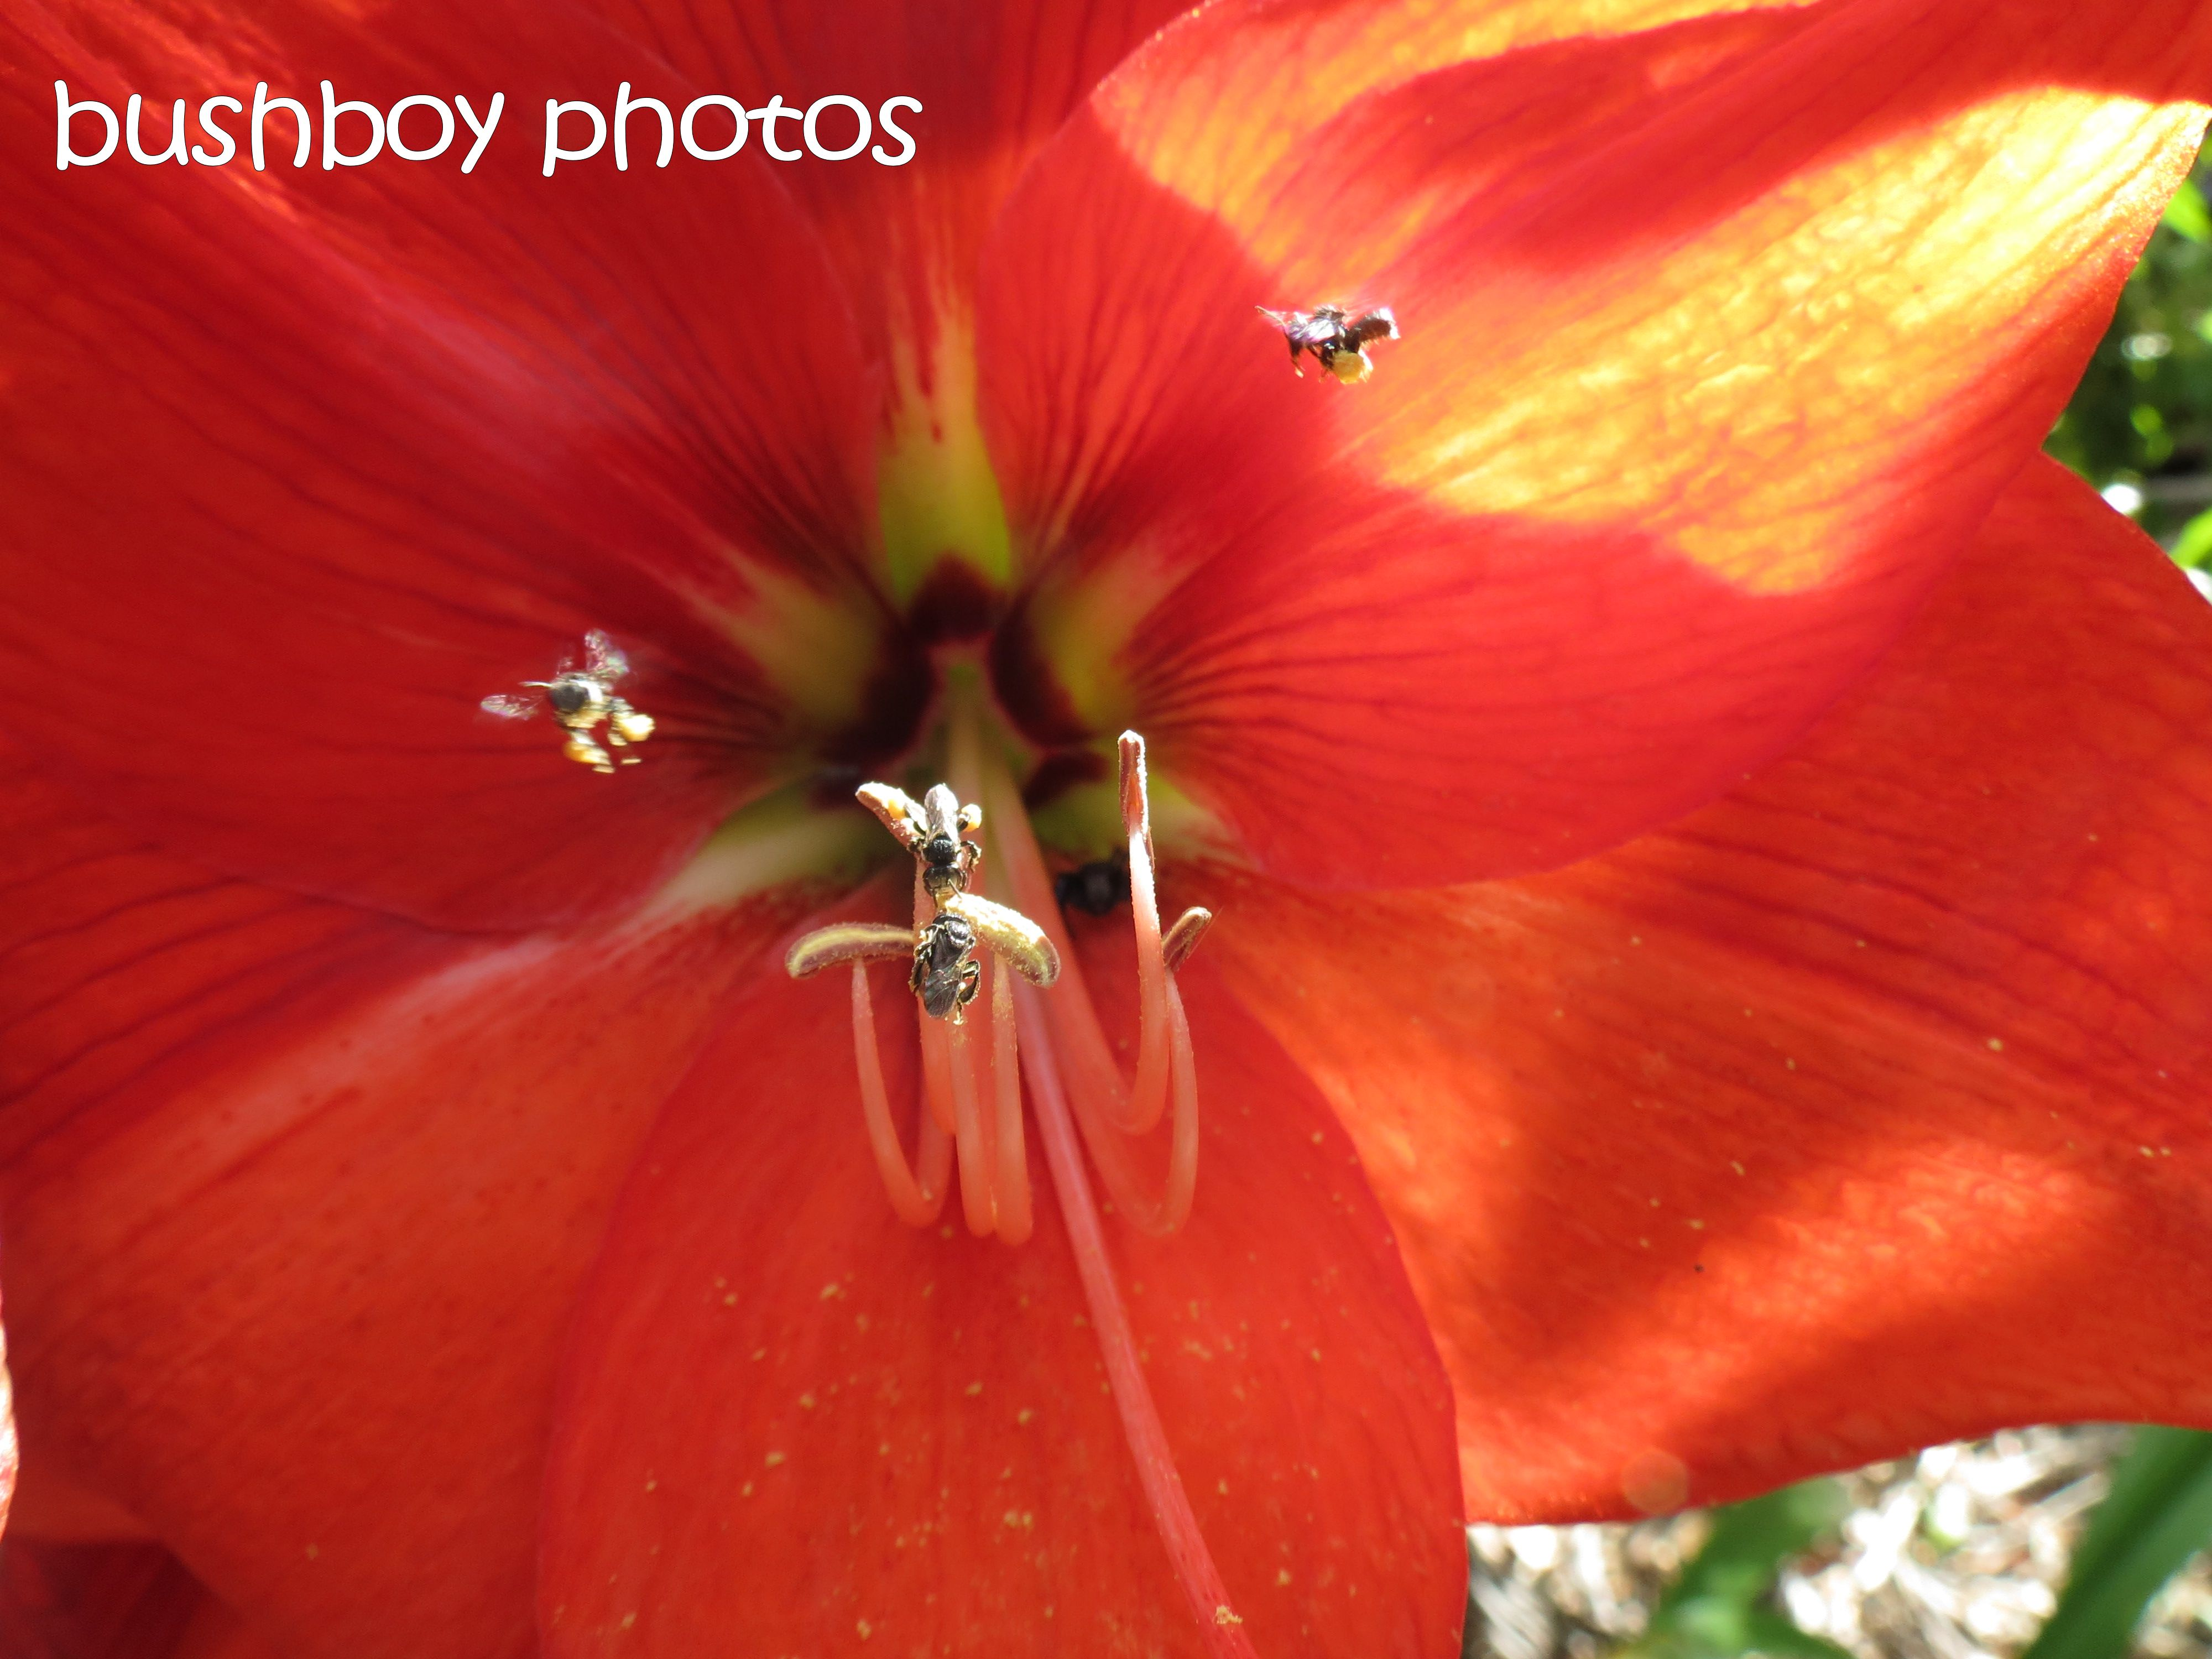 the hippeastrum_the bee_the spider_named_home04_oct 2015